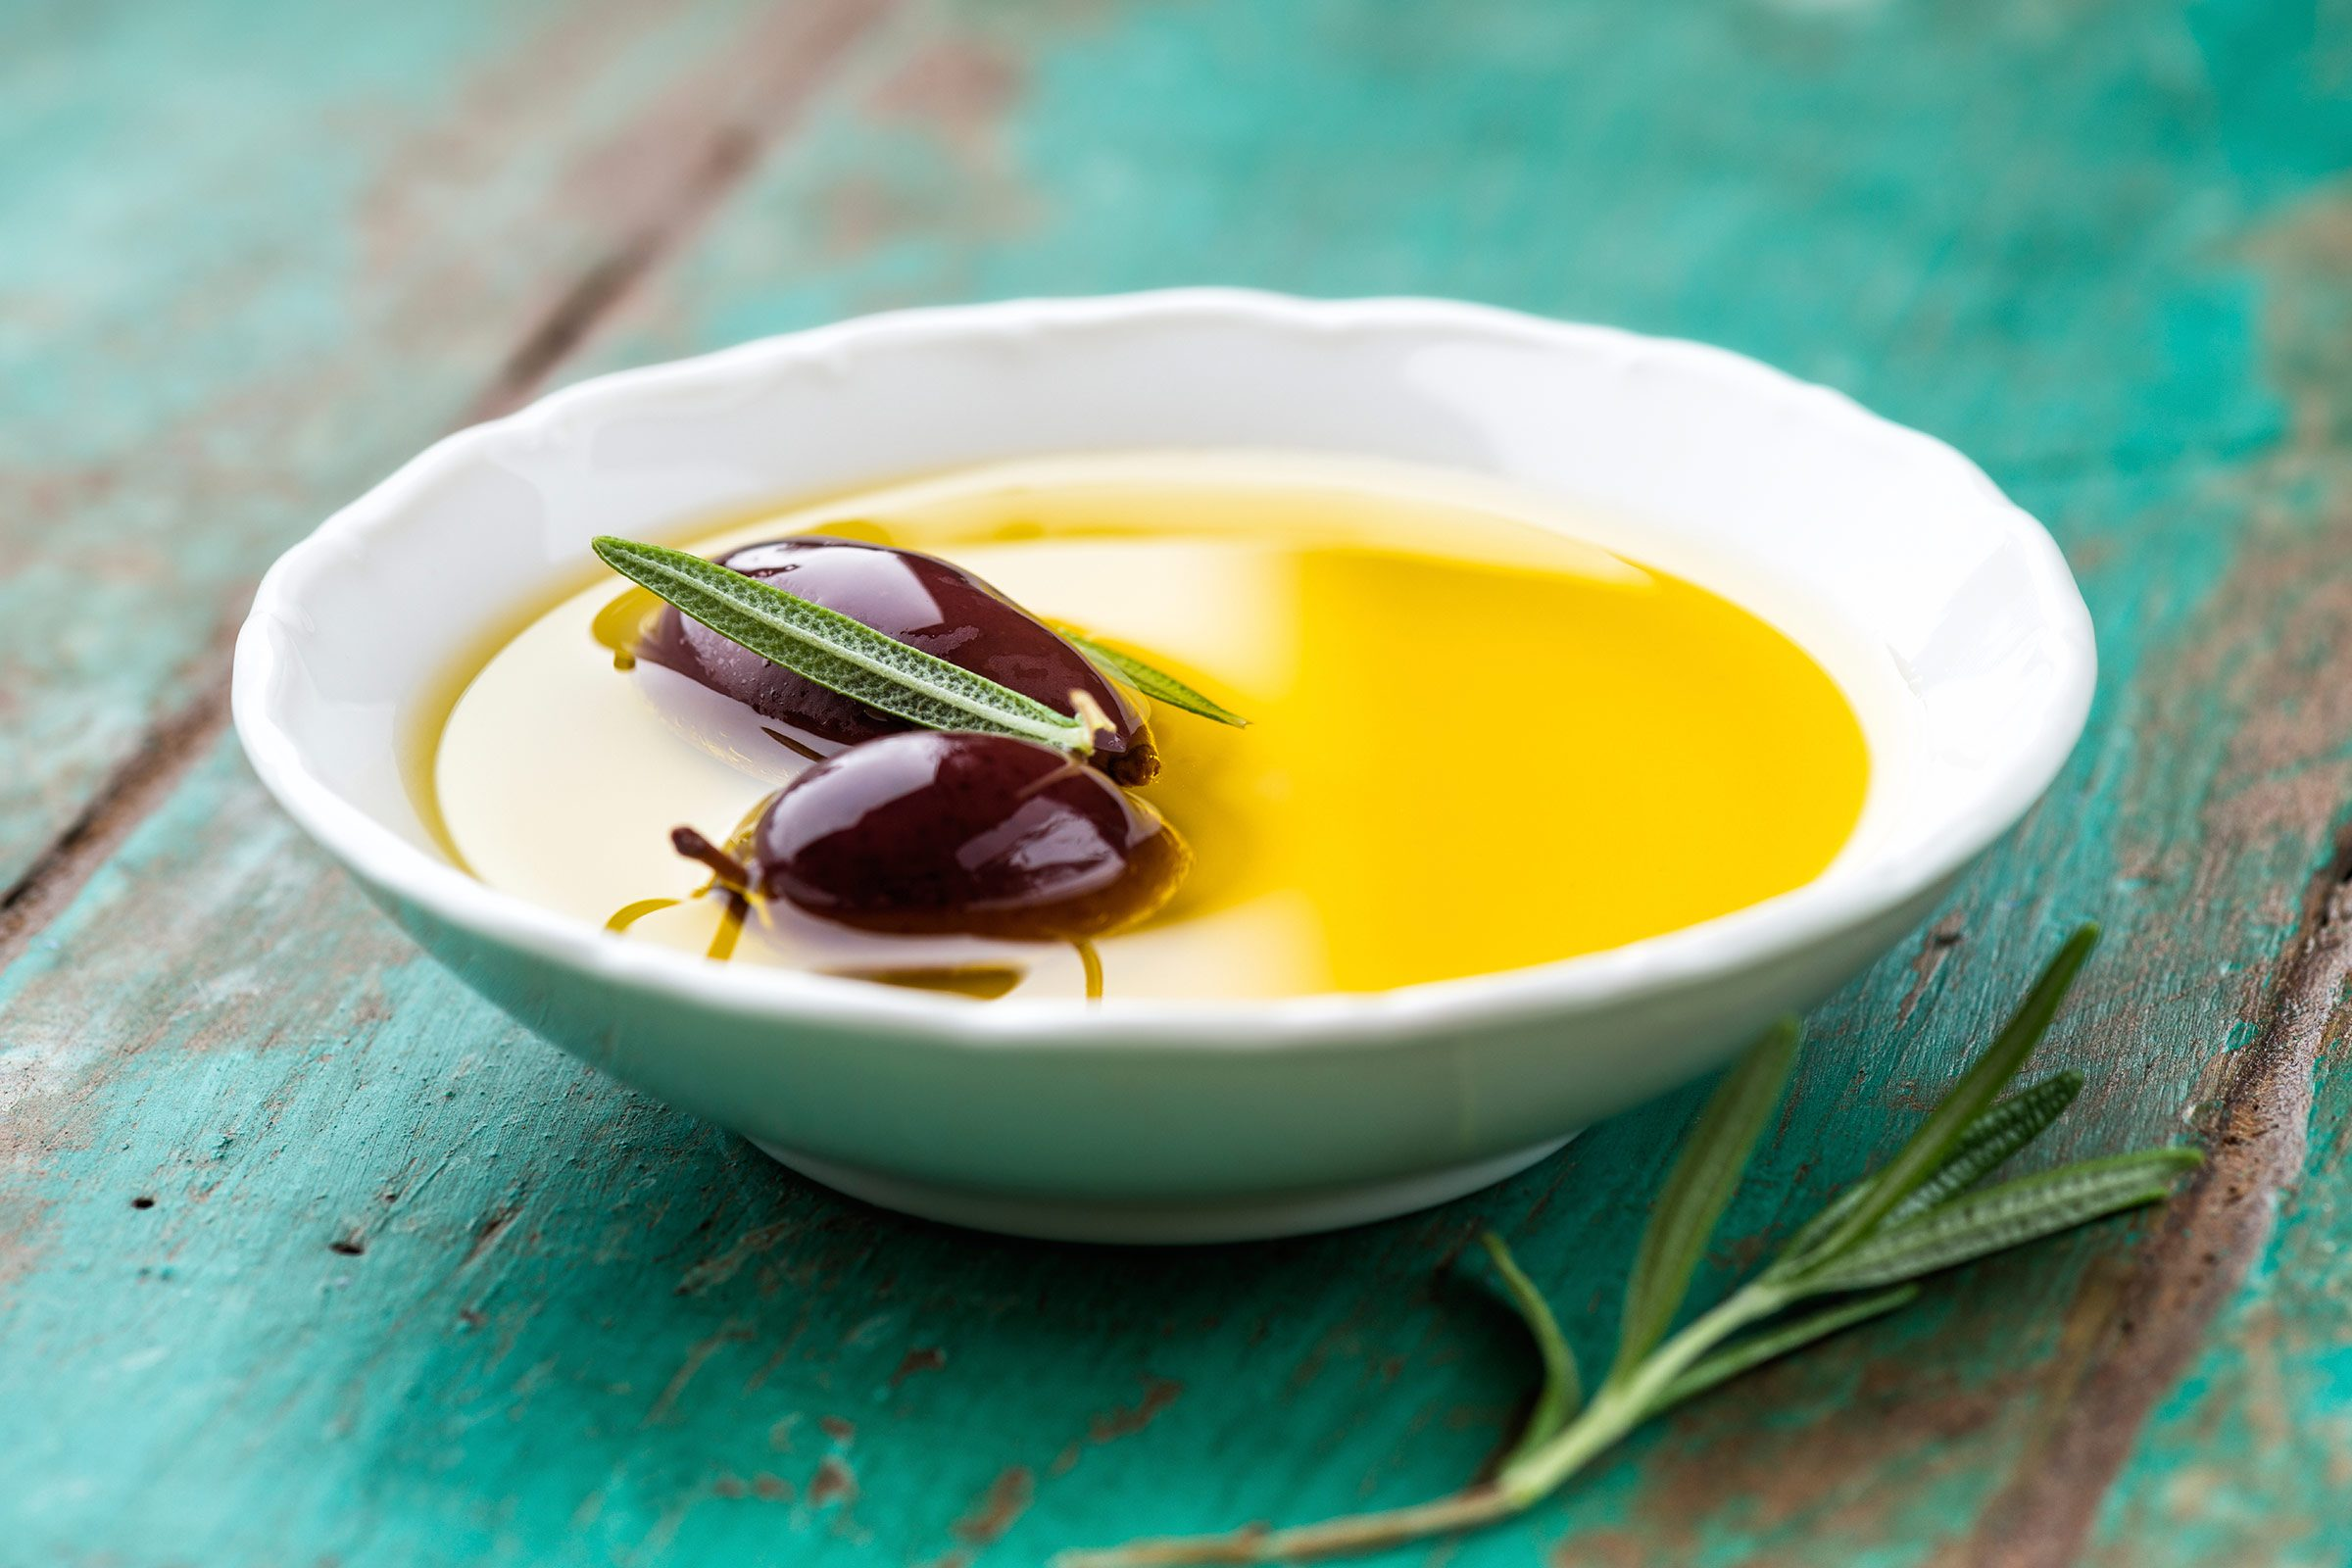 Olive oil might be the key to longer life.